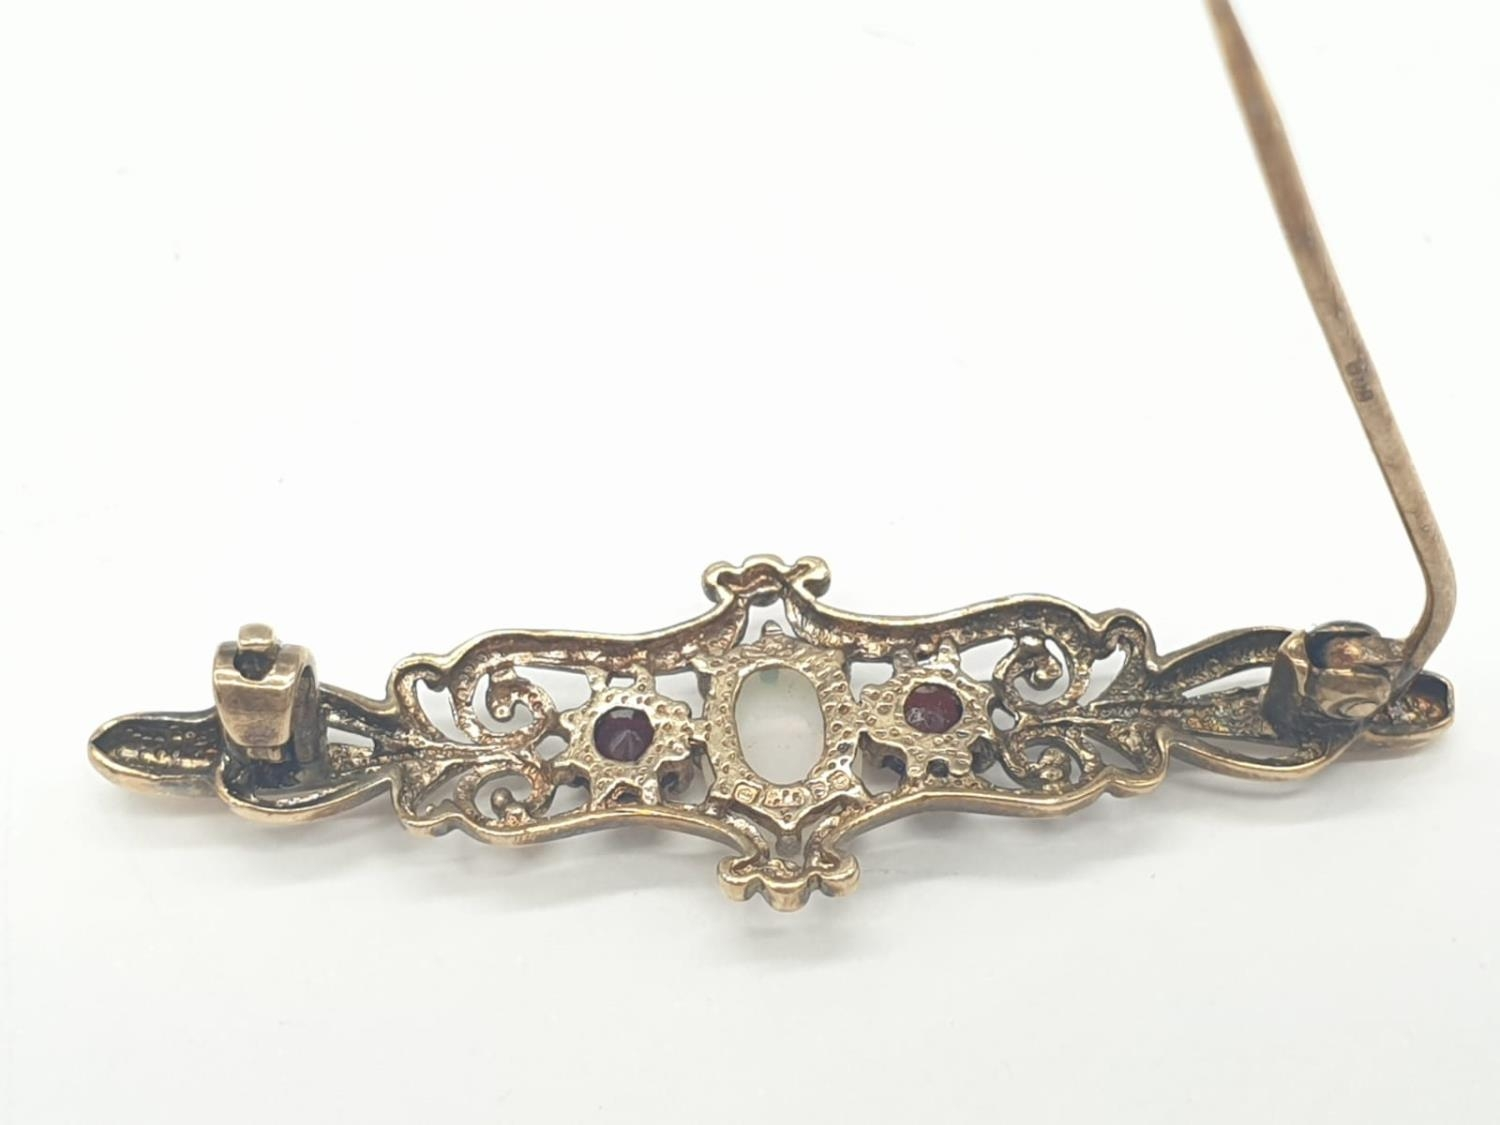 9ct gold opal and garnet bar brooch, weight 2.5g and 4cm long approx - Image 4 of 5